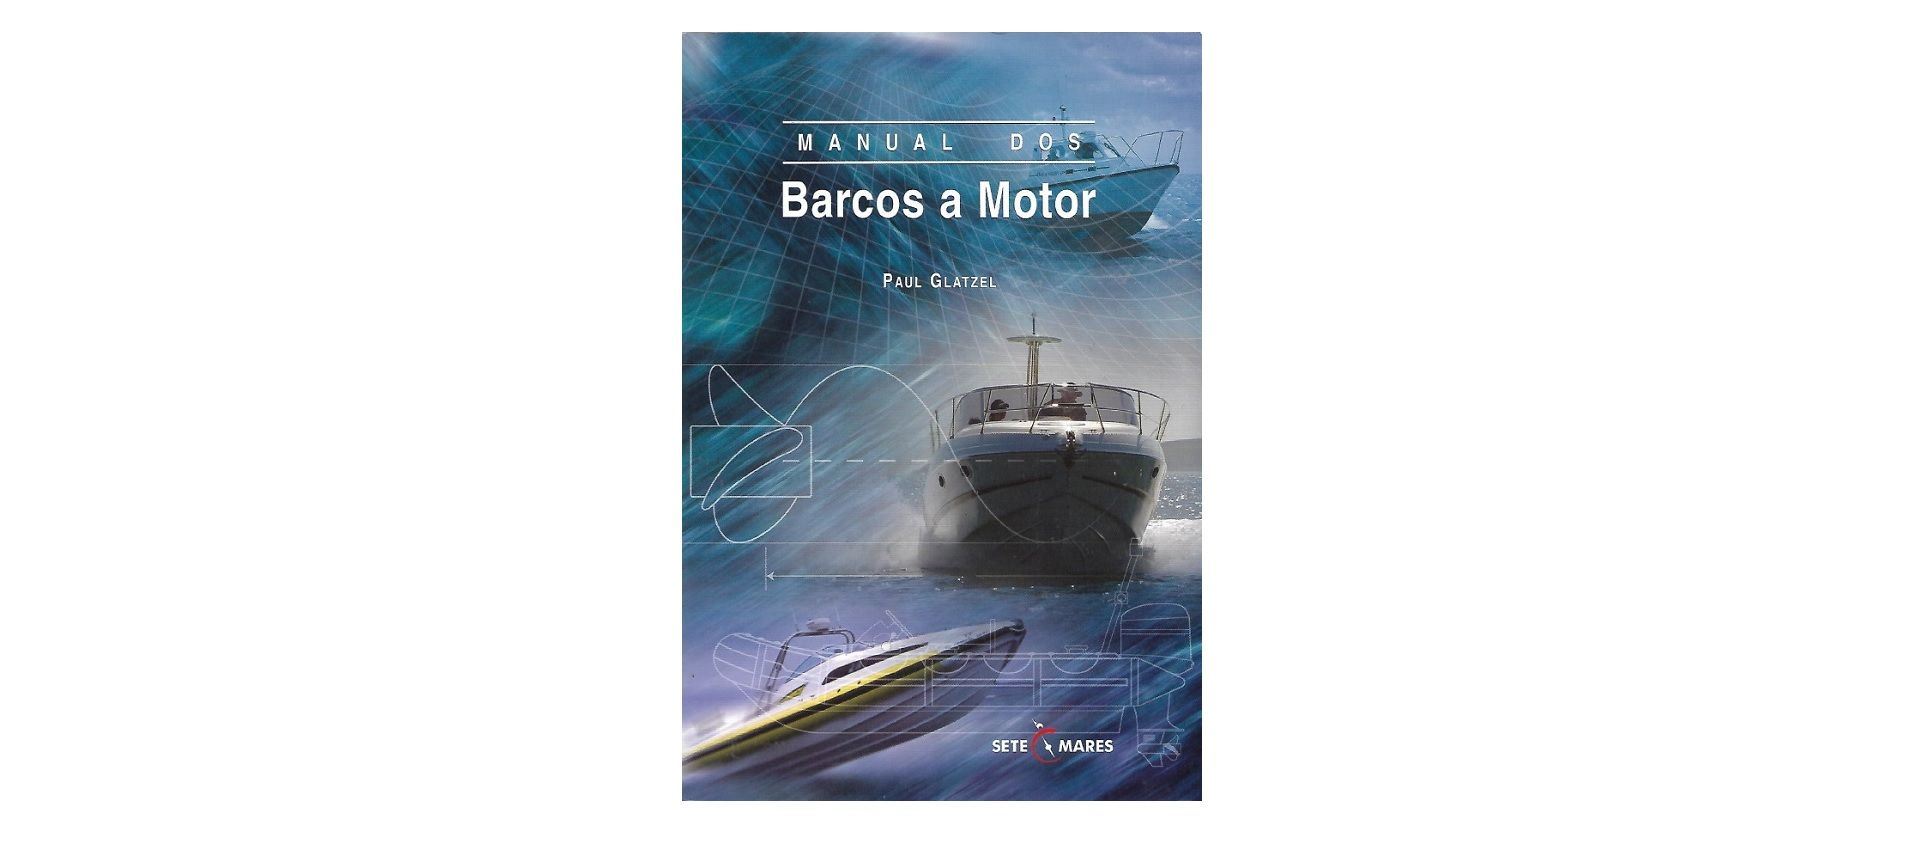 Manual dos barcos a motor